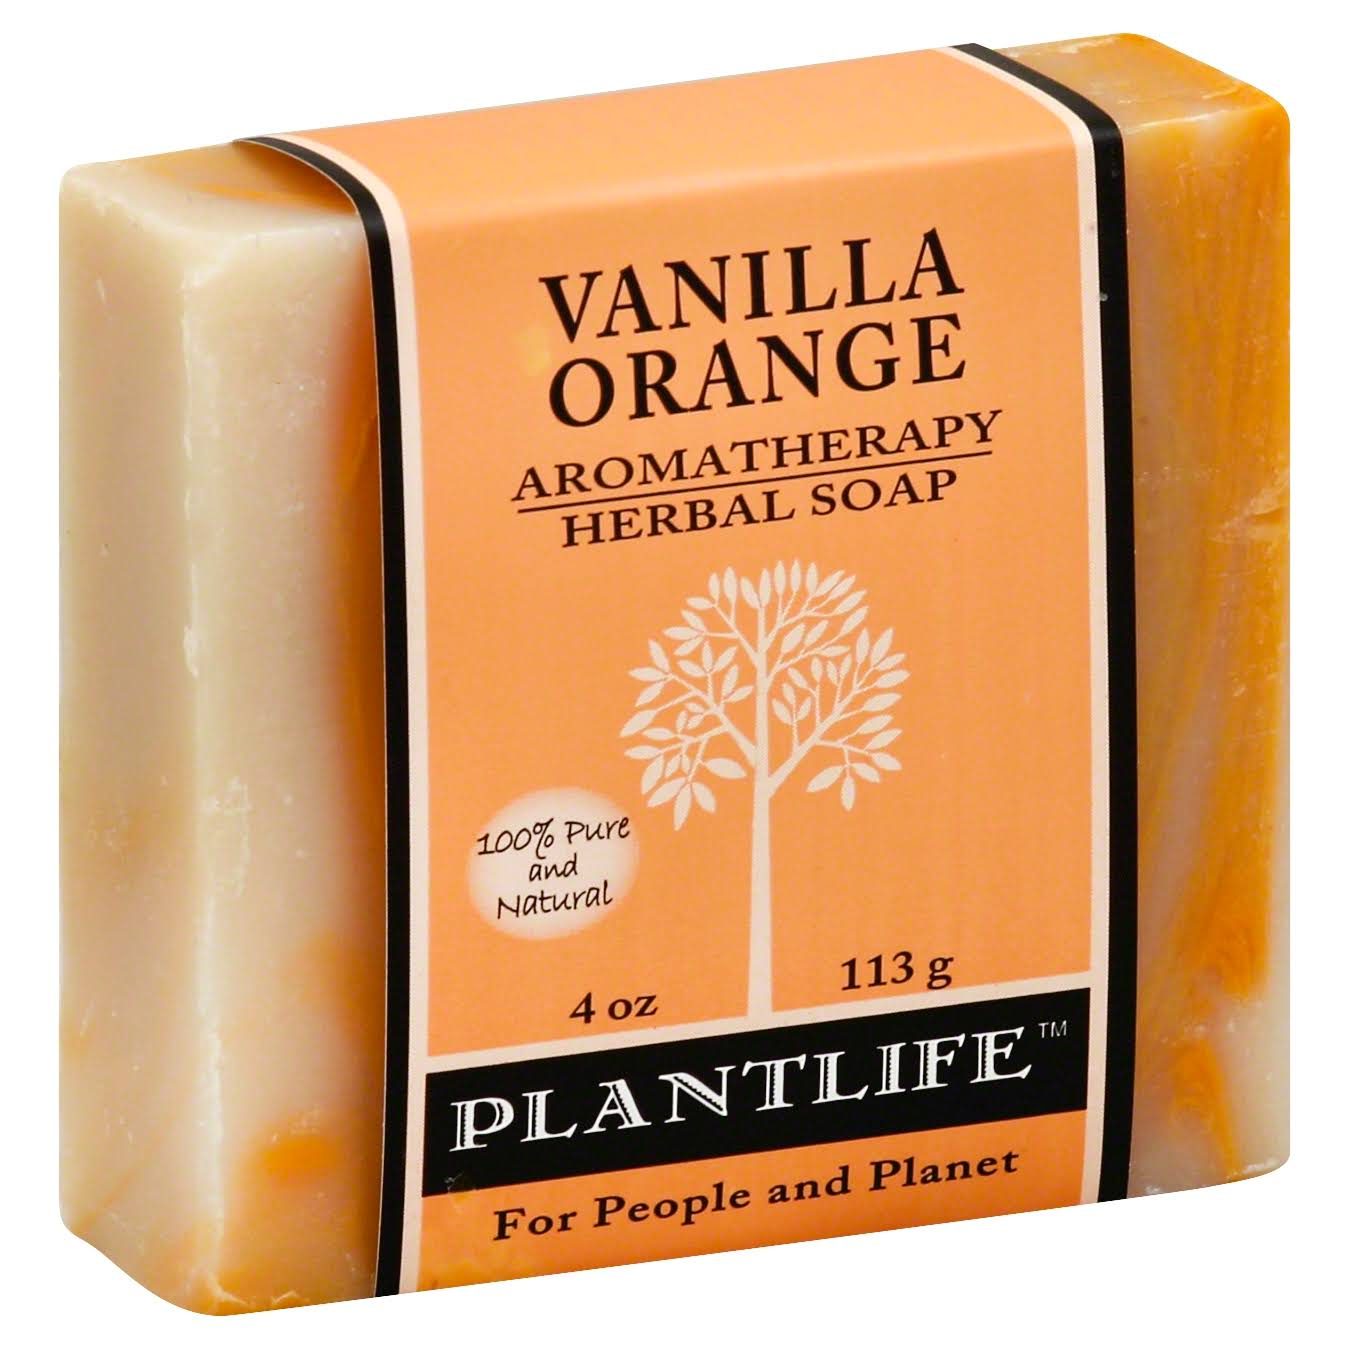 Plant Life Aromatherapy Herbal Soap - Vanilla Orange, 113g